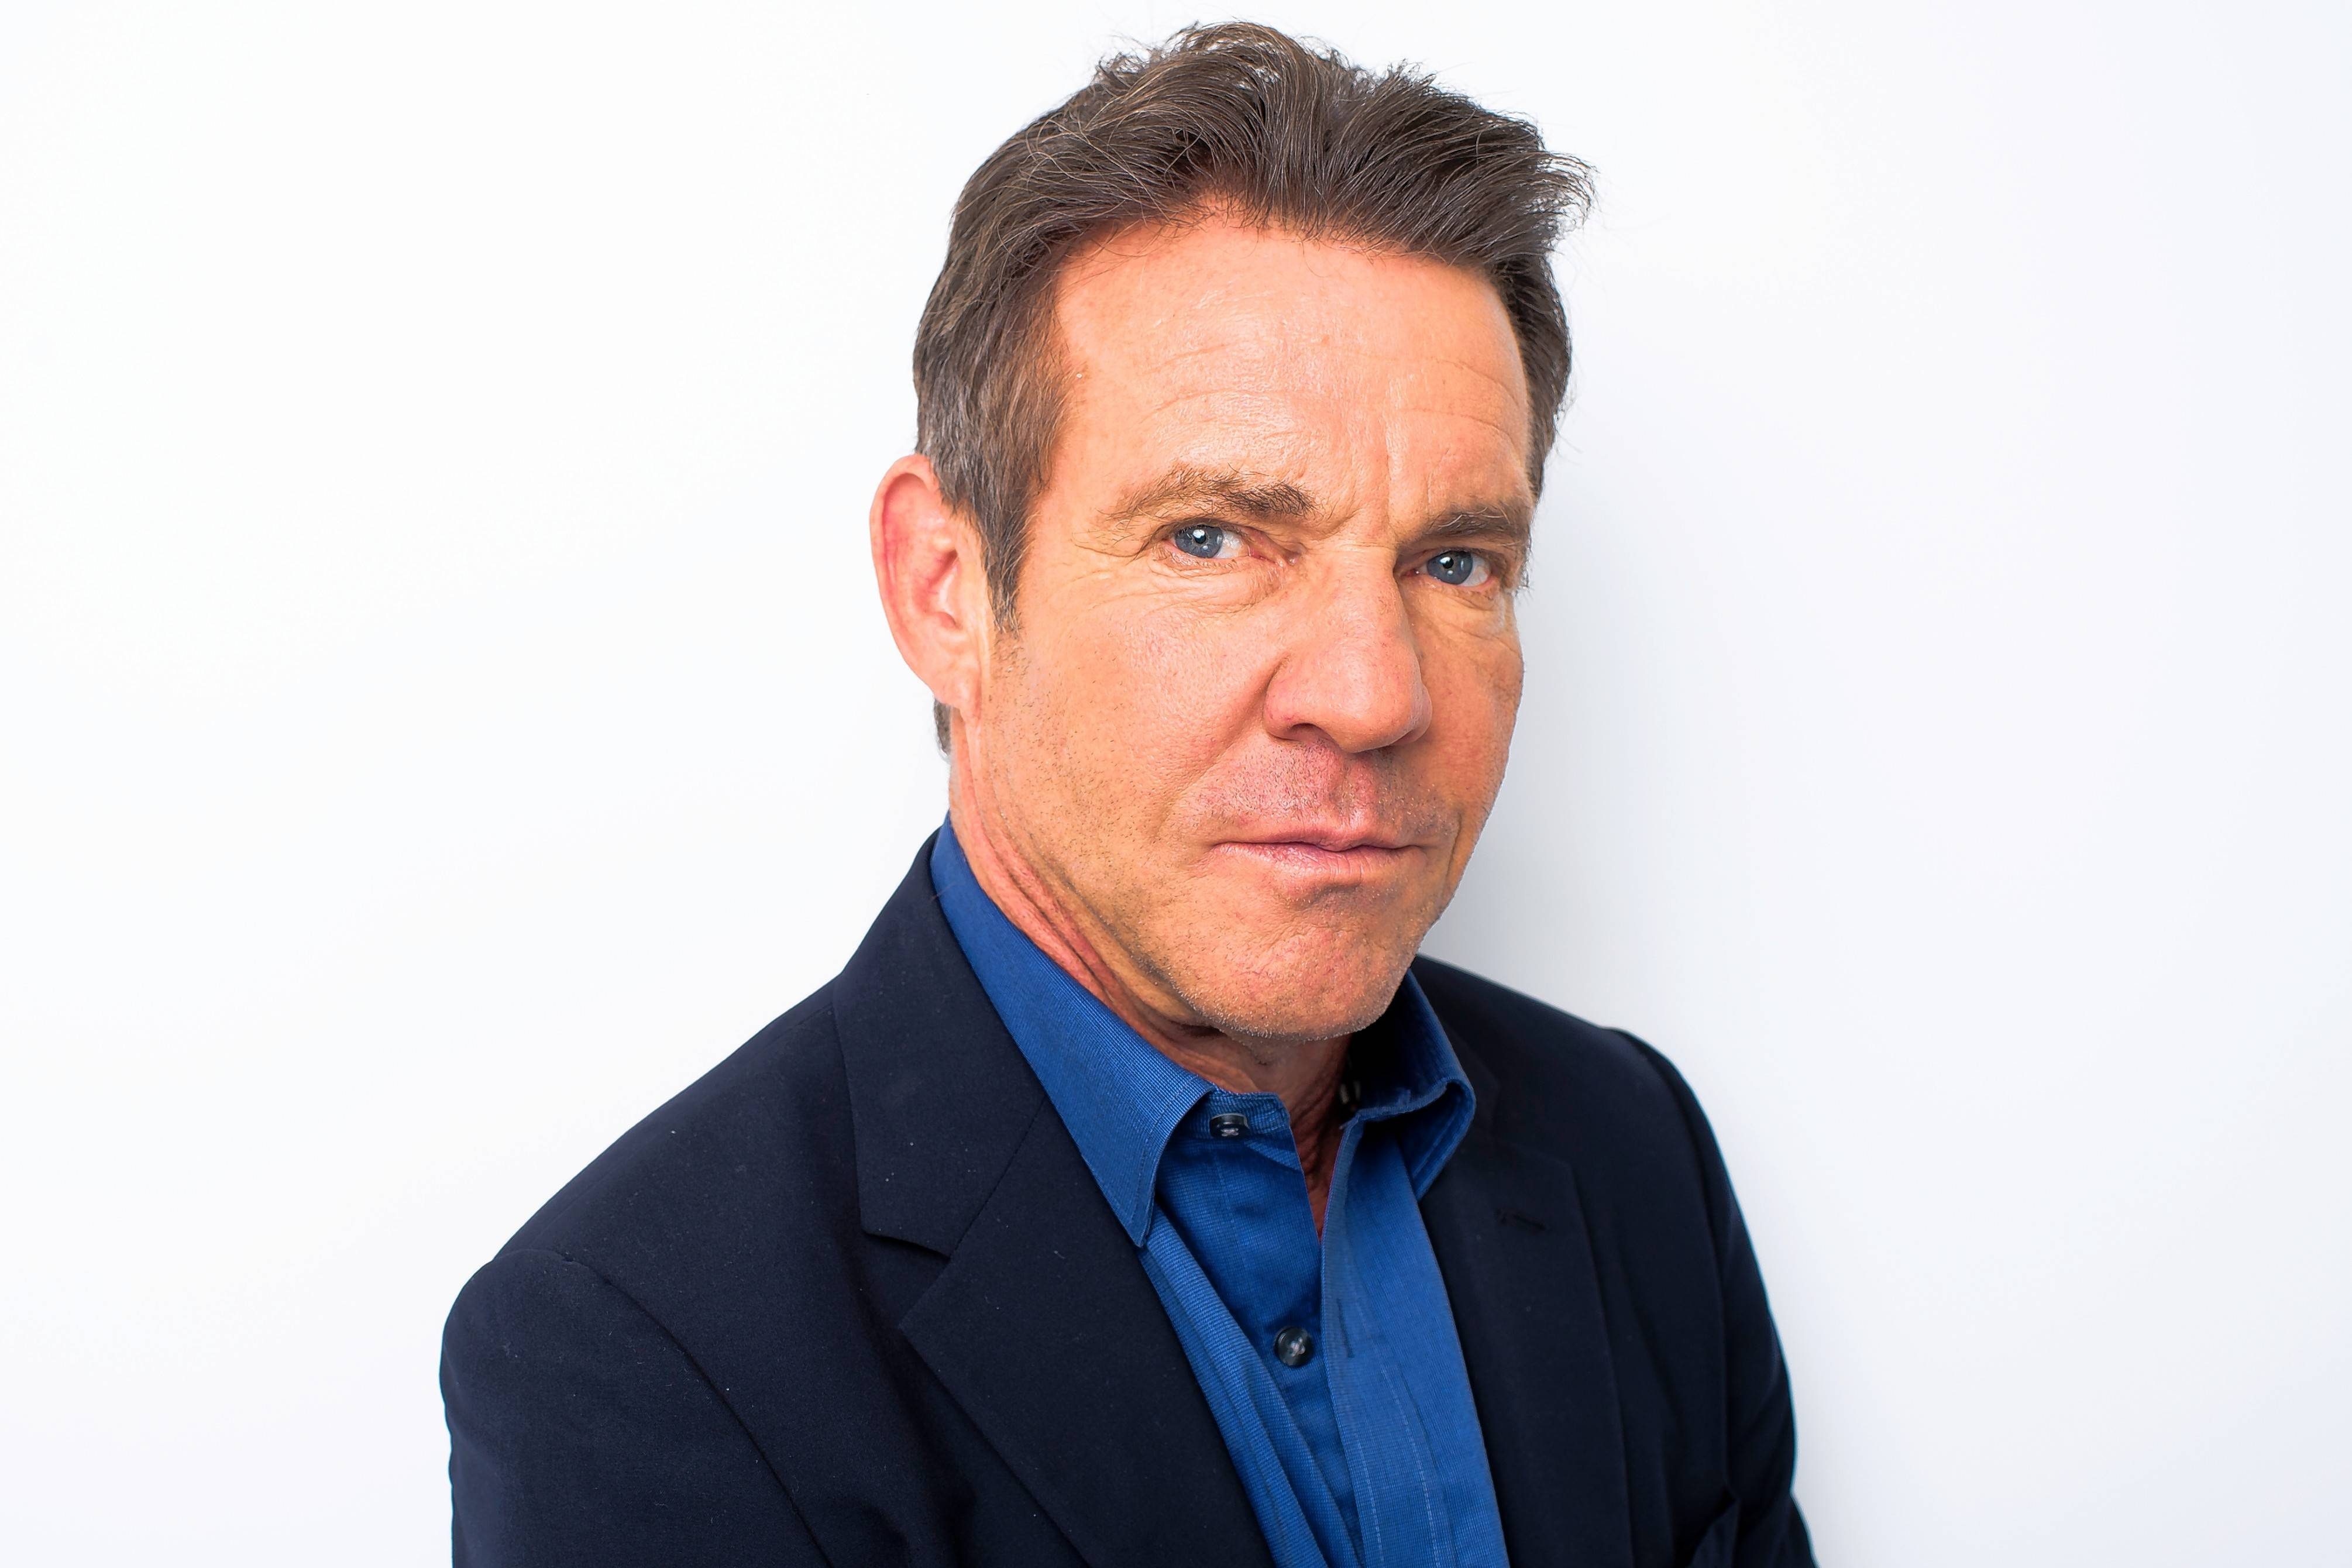 Dennis Quaid performs with the band The Sharks Saturday at the Arcada Theatre in St. Charles.